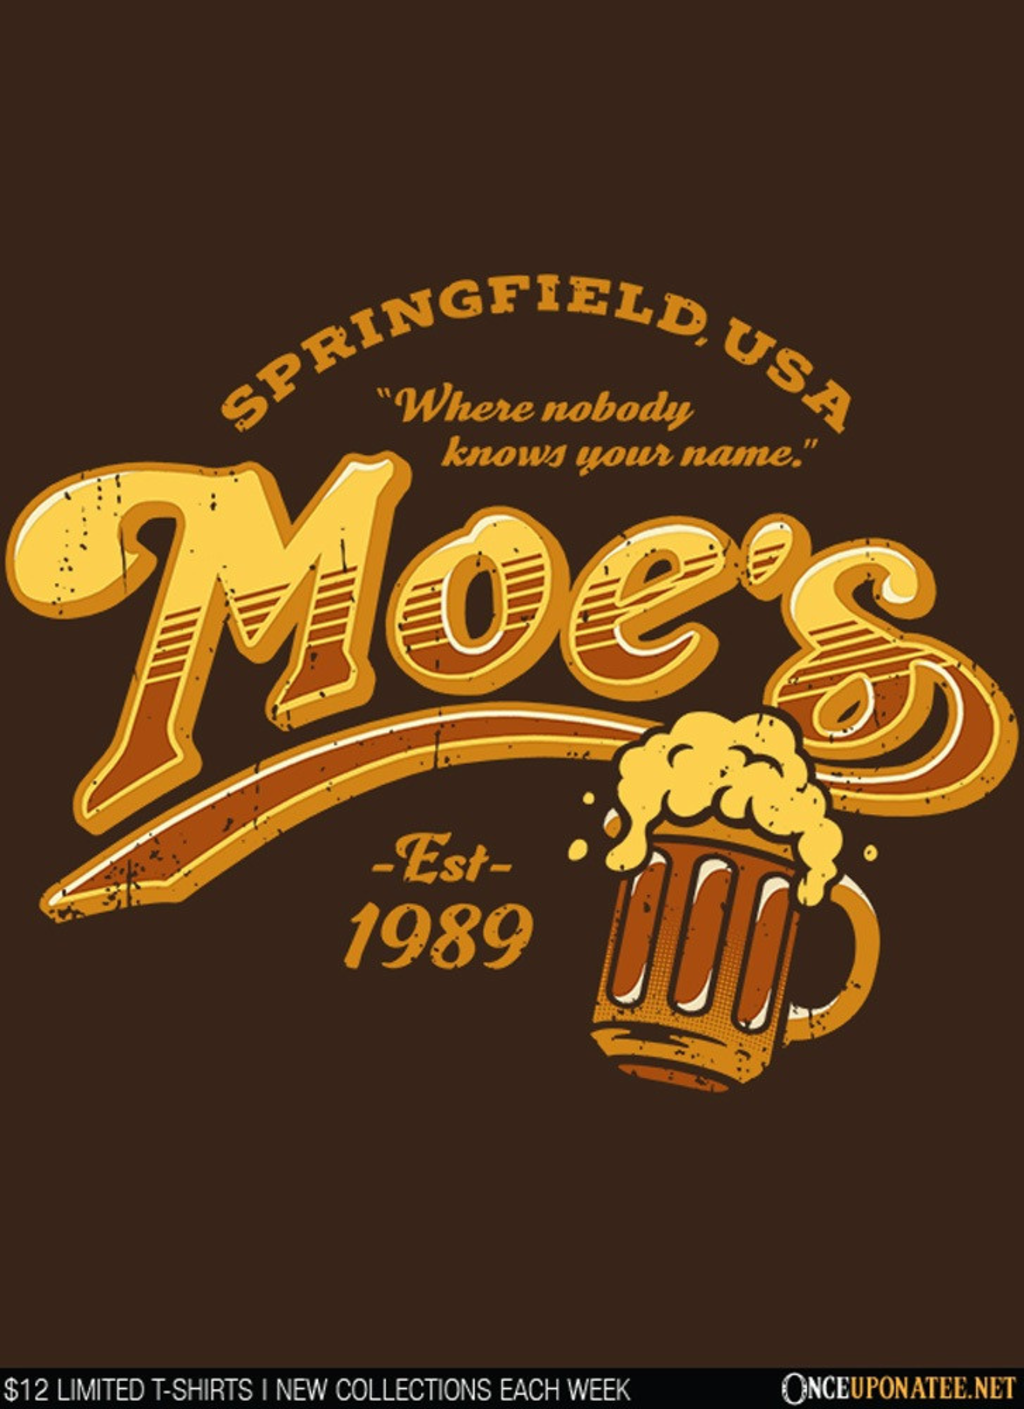 Once Upon a Tee: Moe's Tavern-1